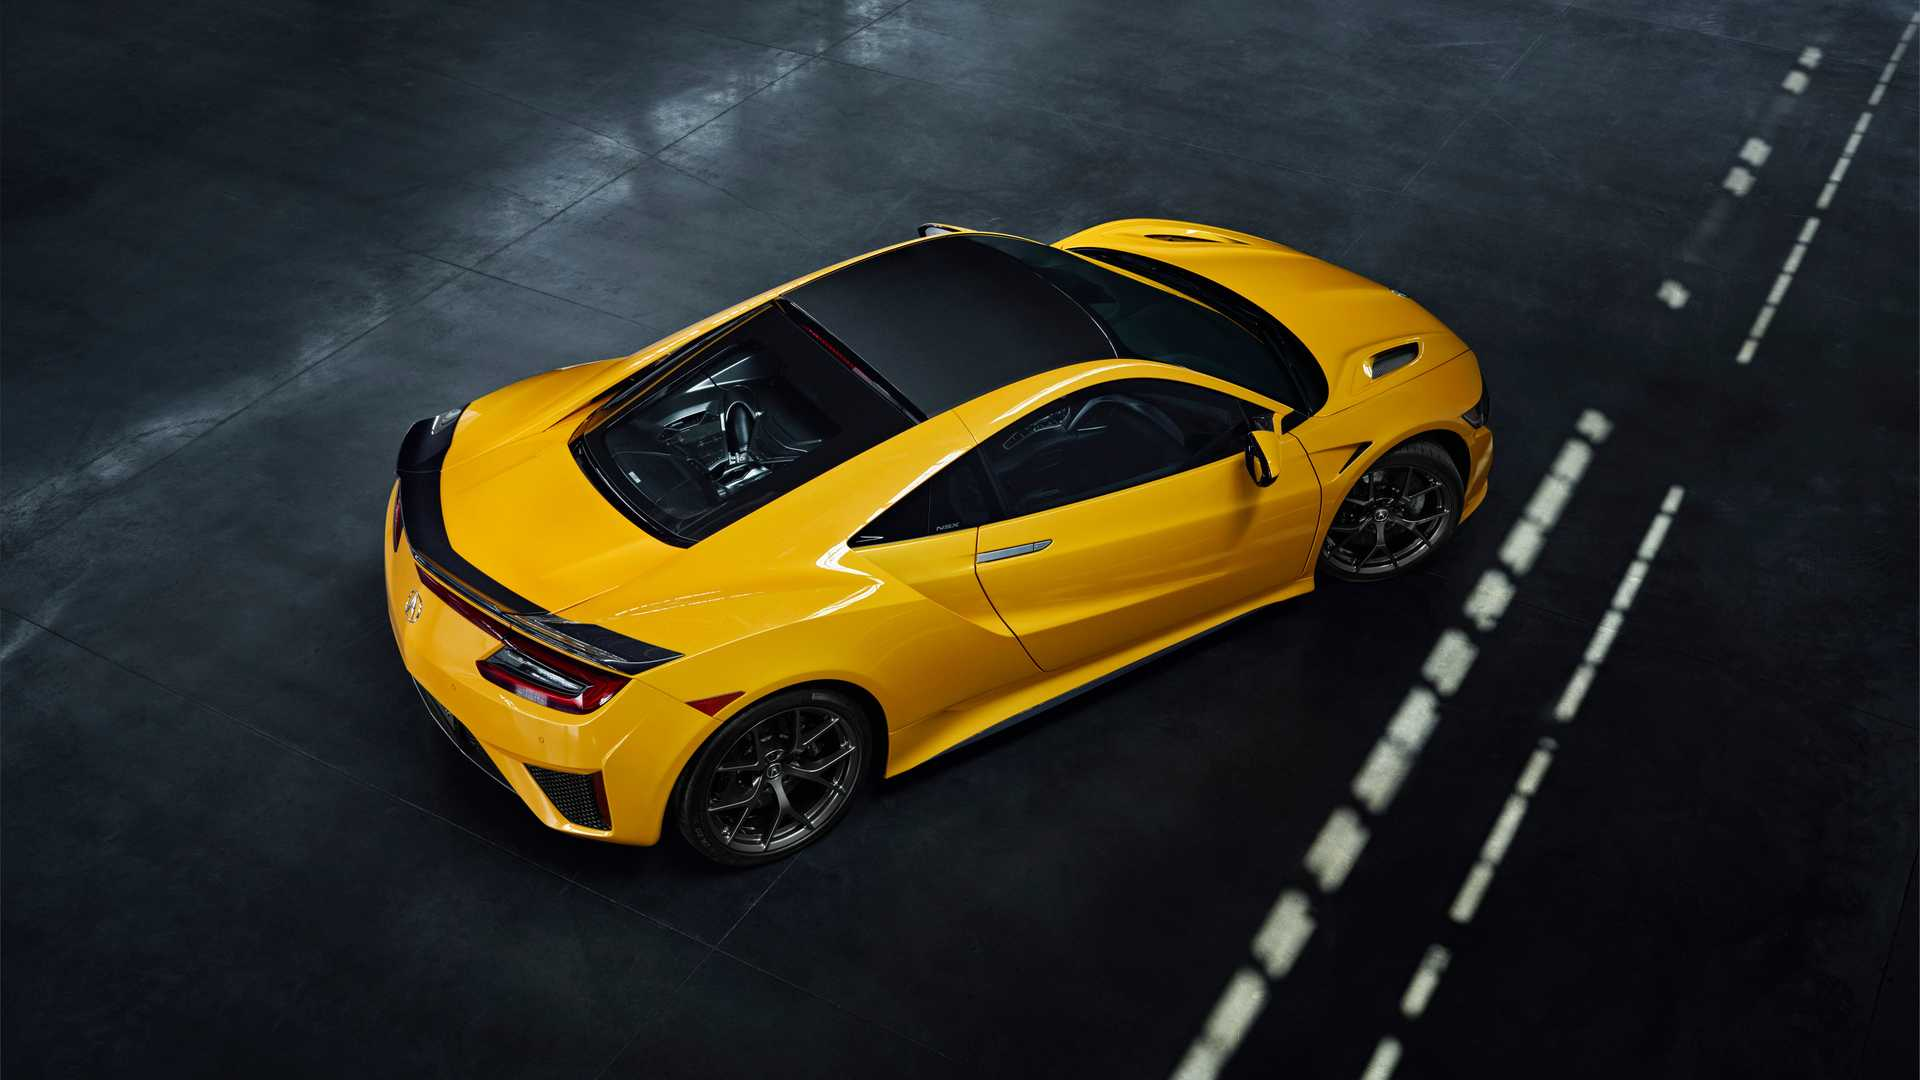 [Image: 2020-acura-nsx-indy-yellow-pearl.jpg]